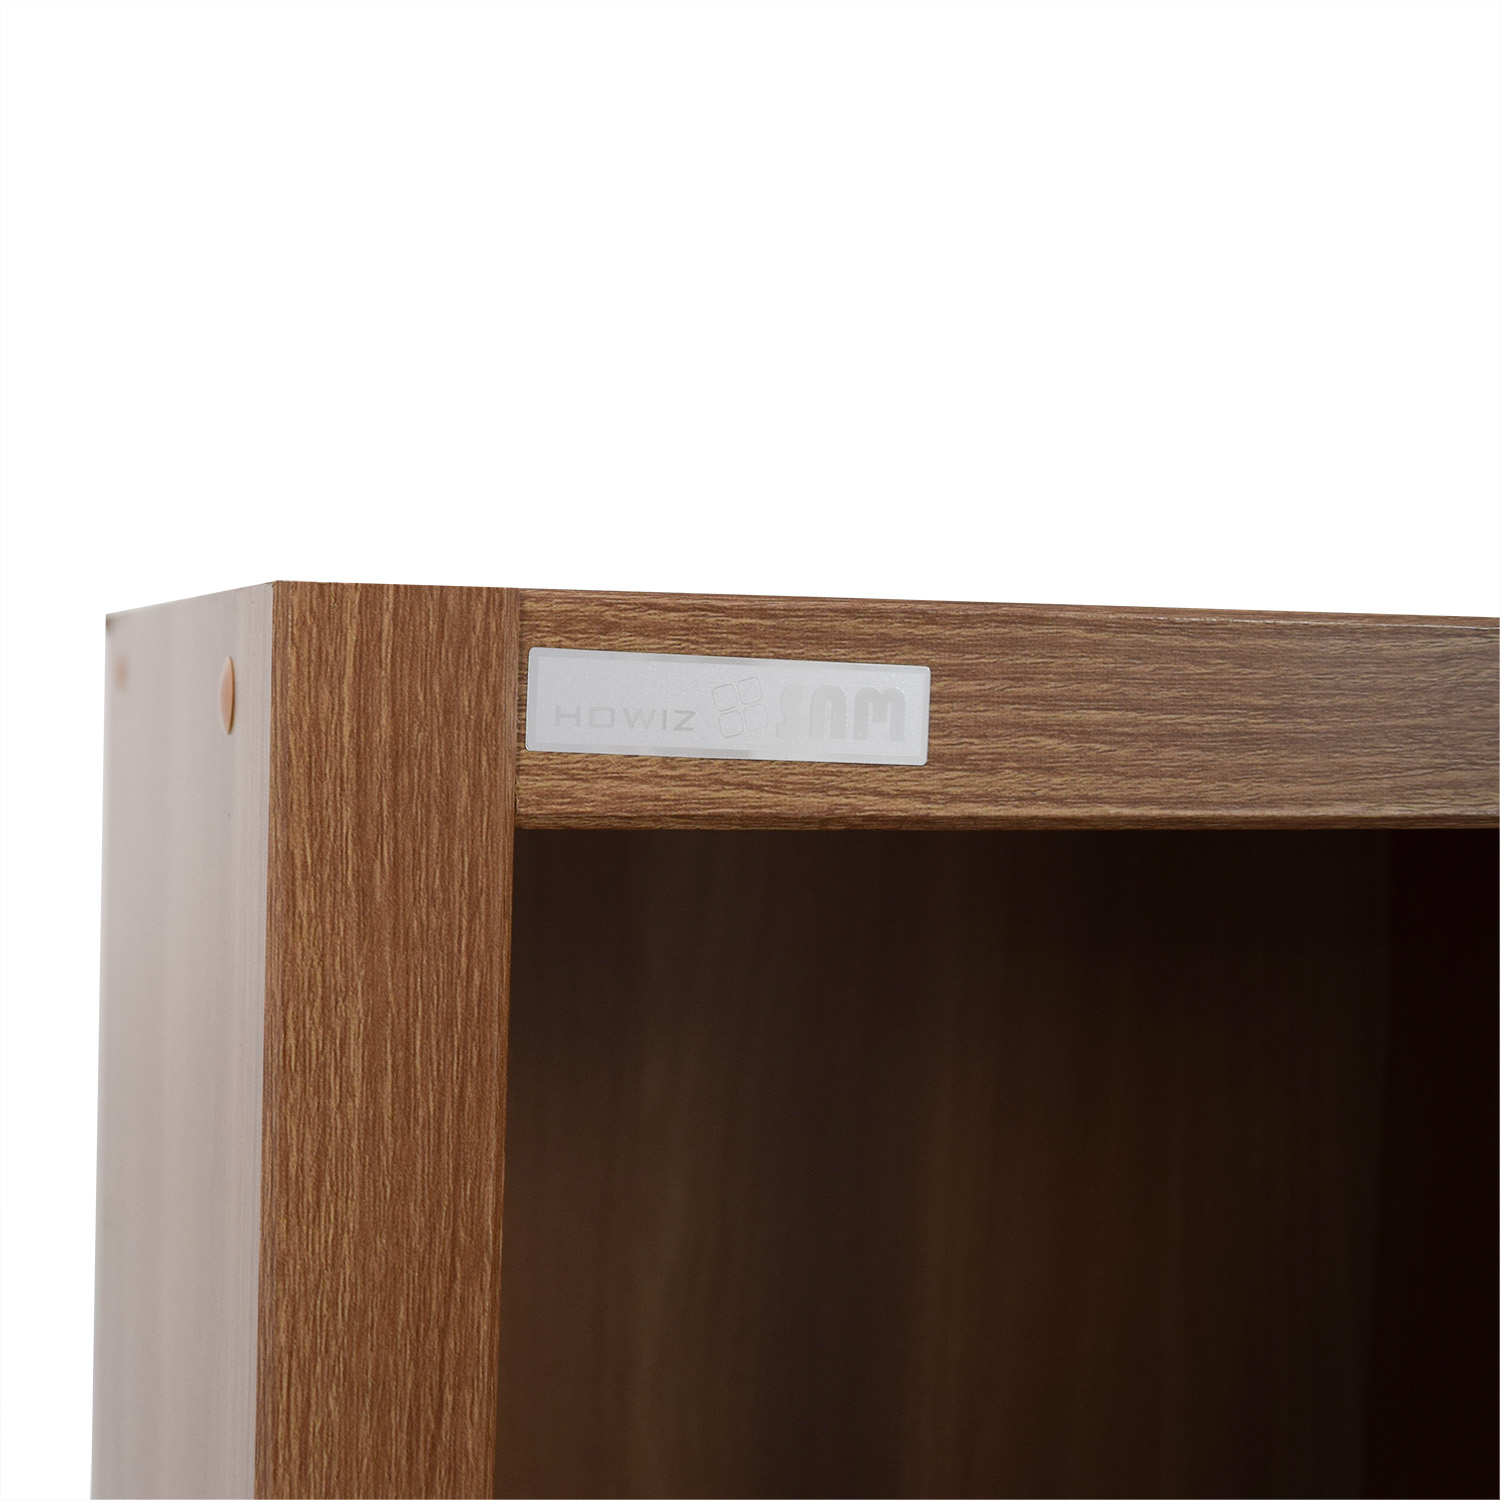 Hansaem Hansaem Natural Wood Bookshelf with Drawers and Storage second hand